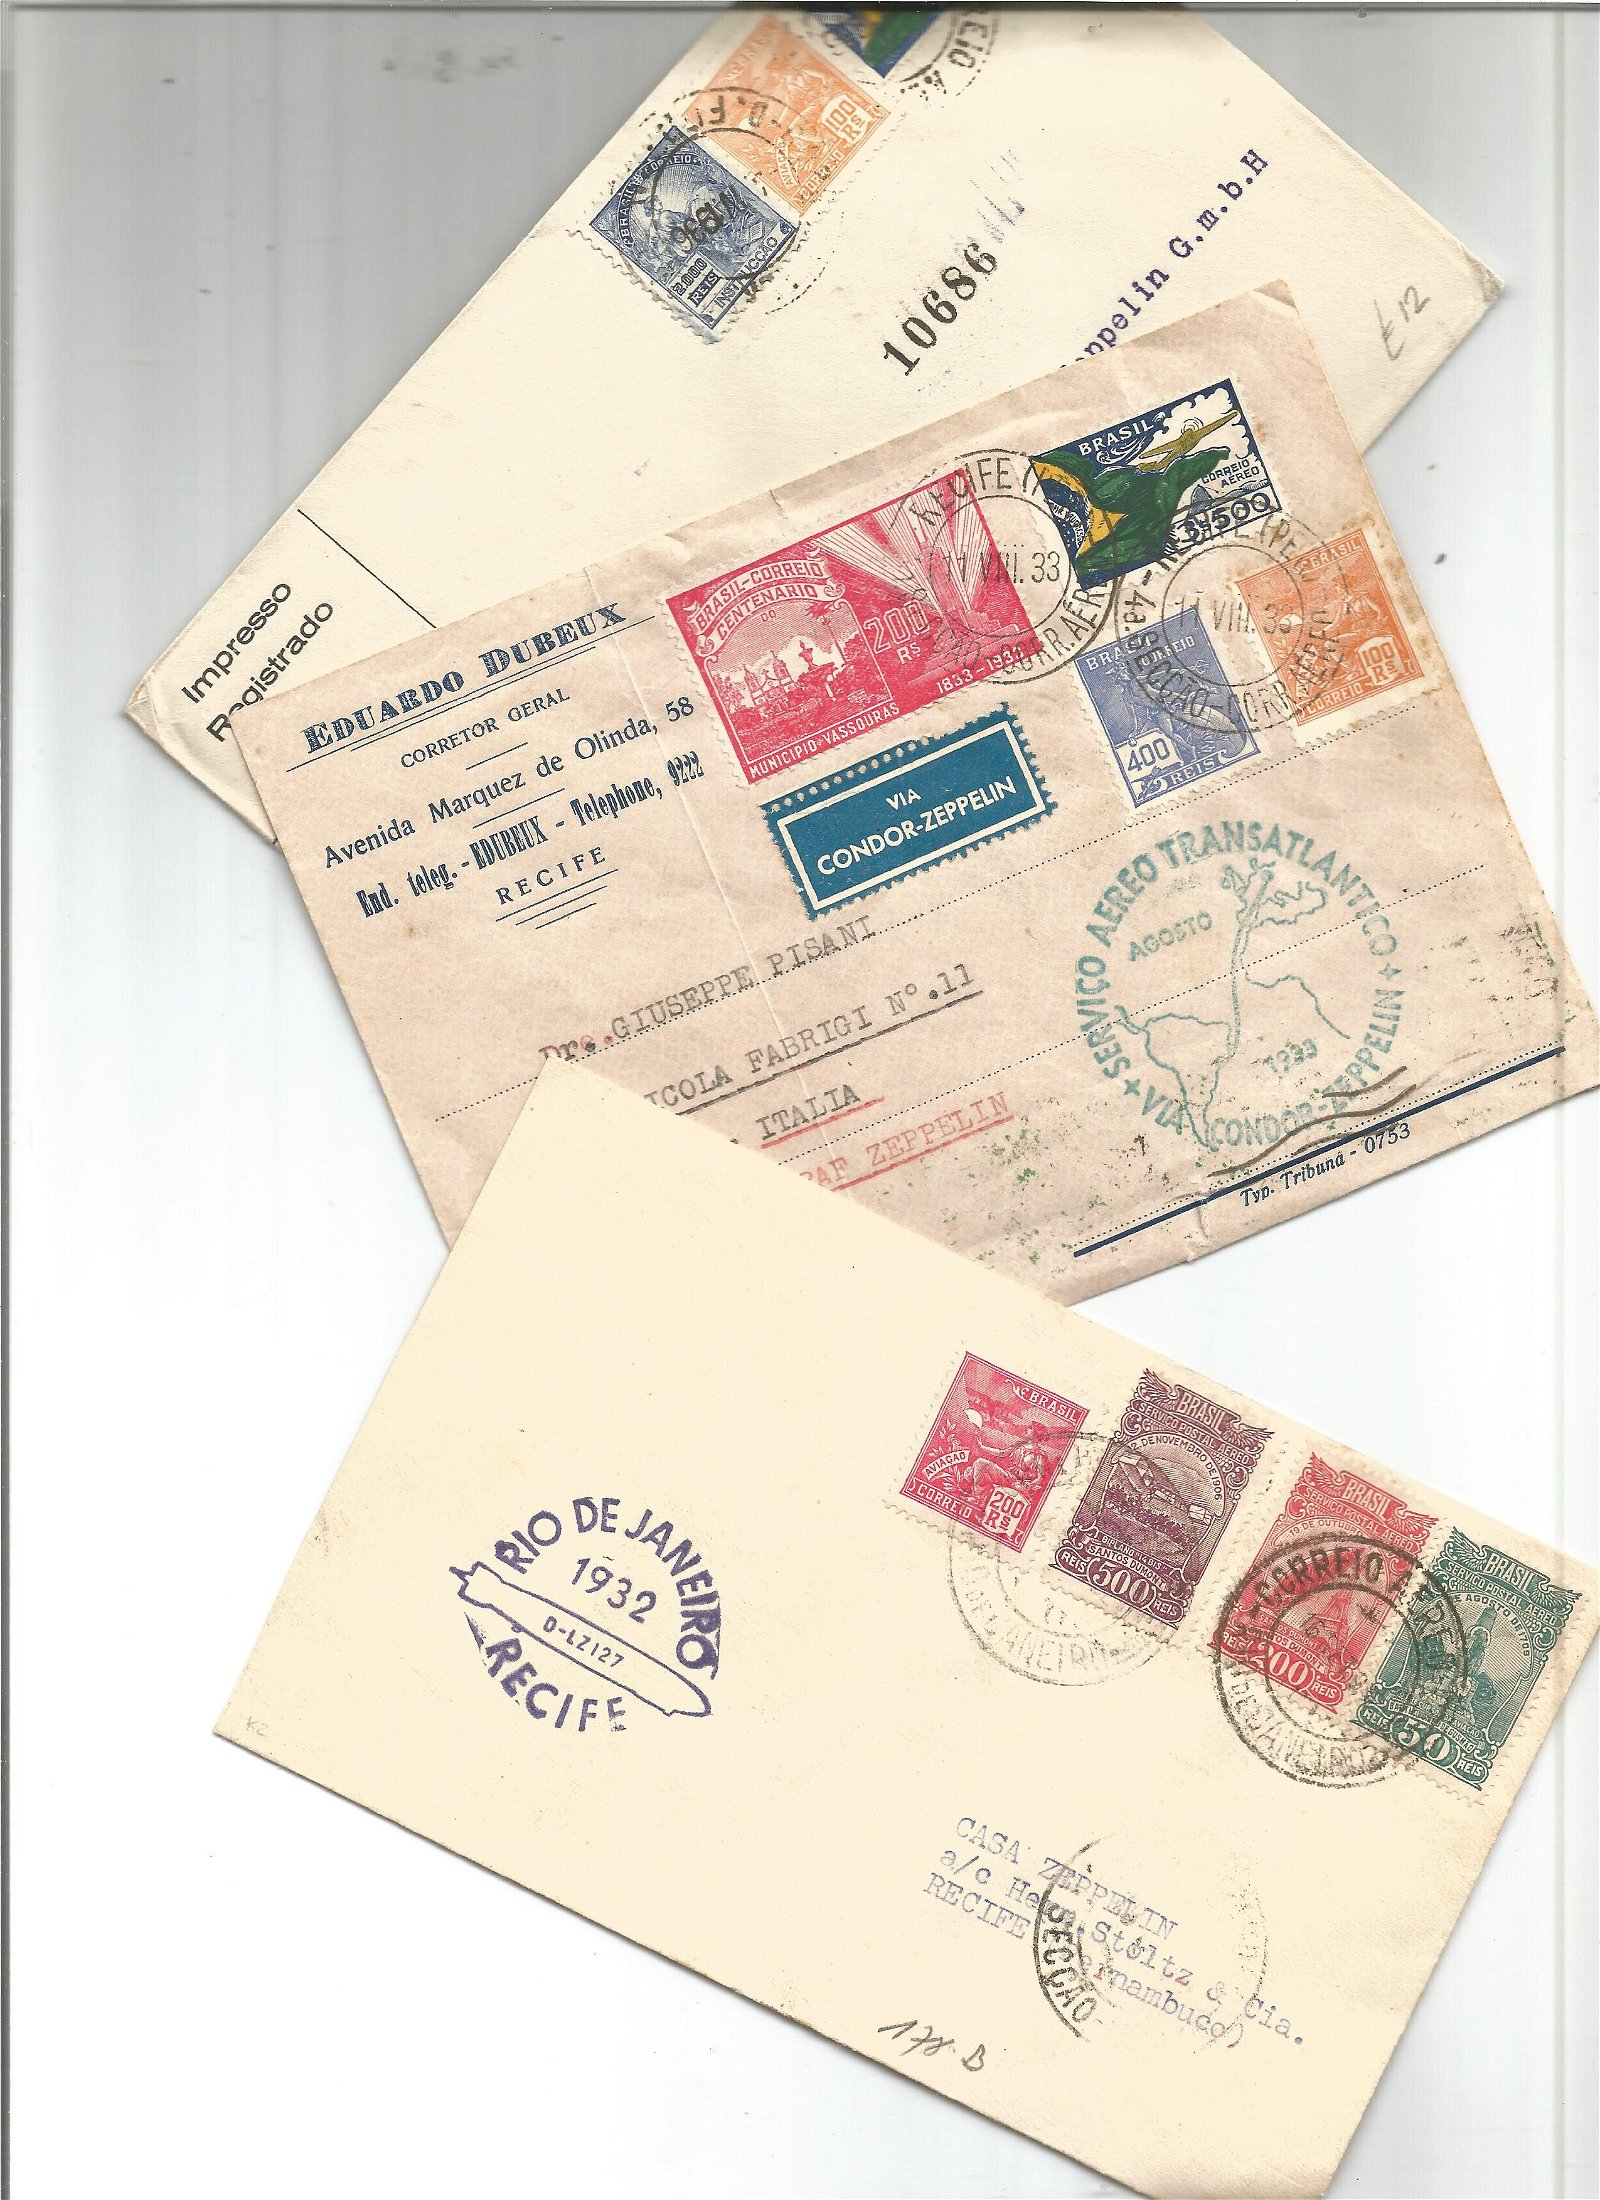 Cover collection from Brazil. 3 included. Dated 1932